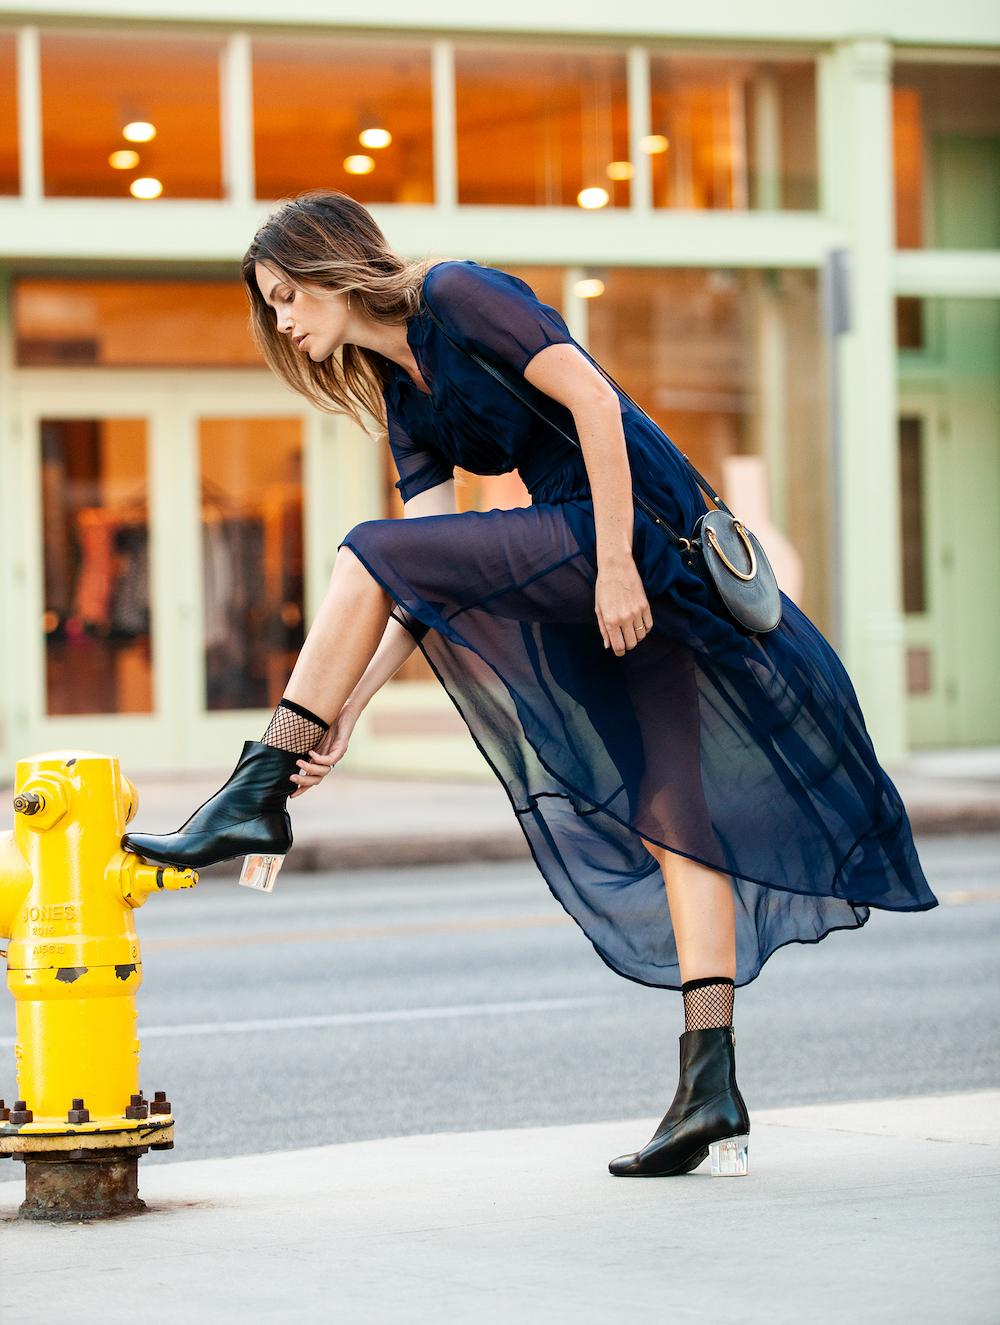 Full-length translucent sundress perfect pairs with leather booties